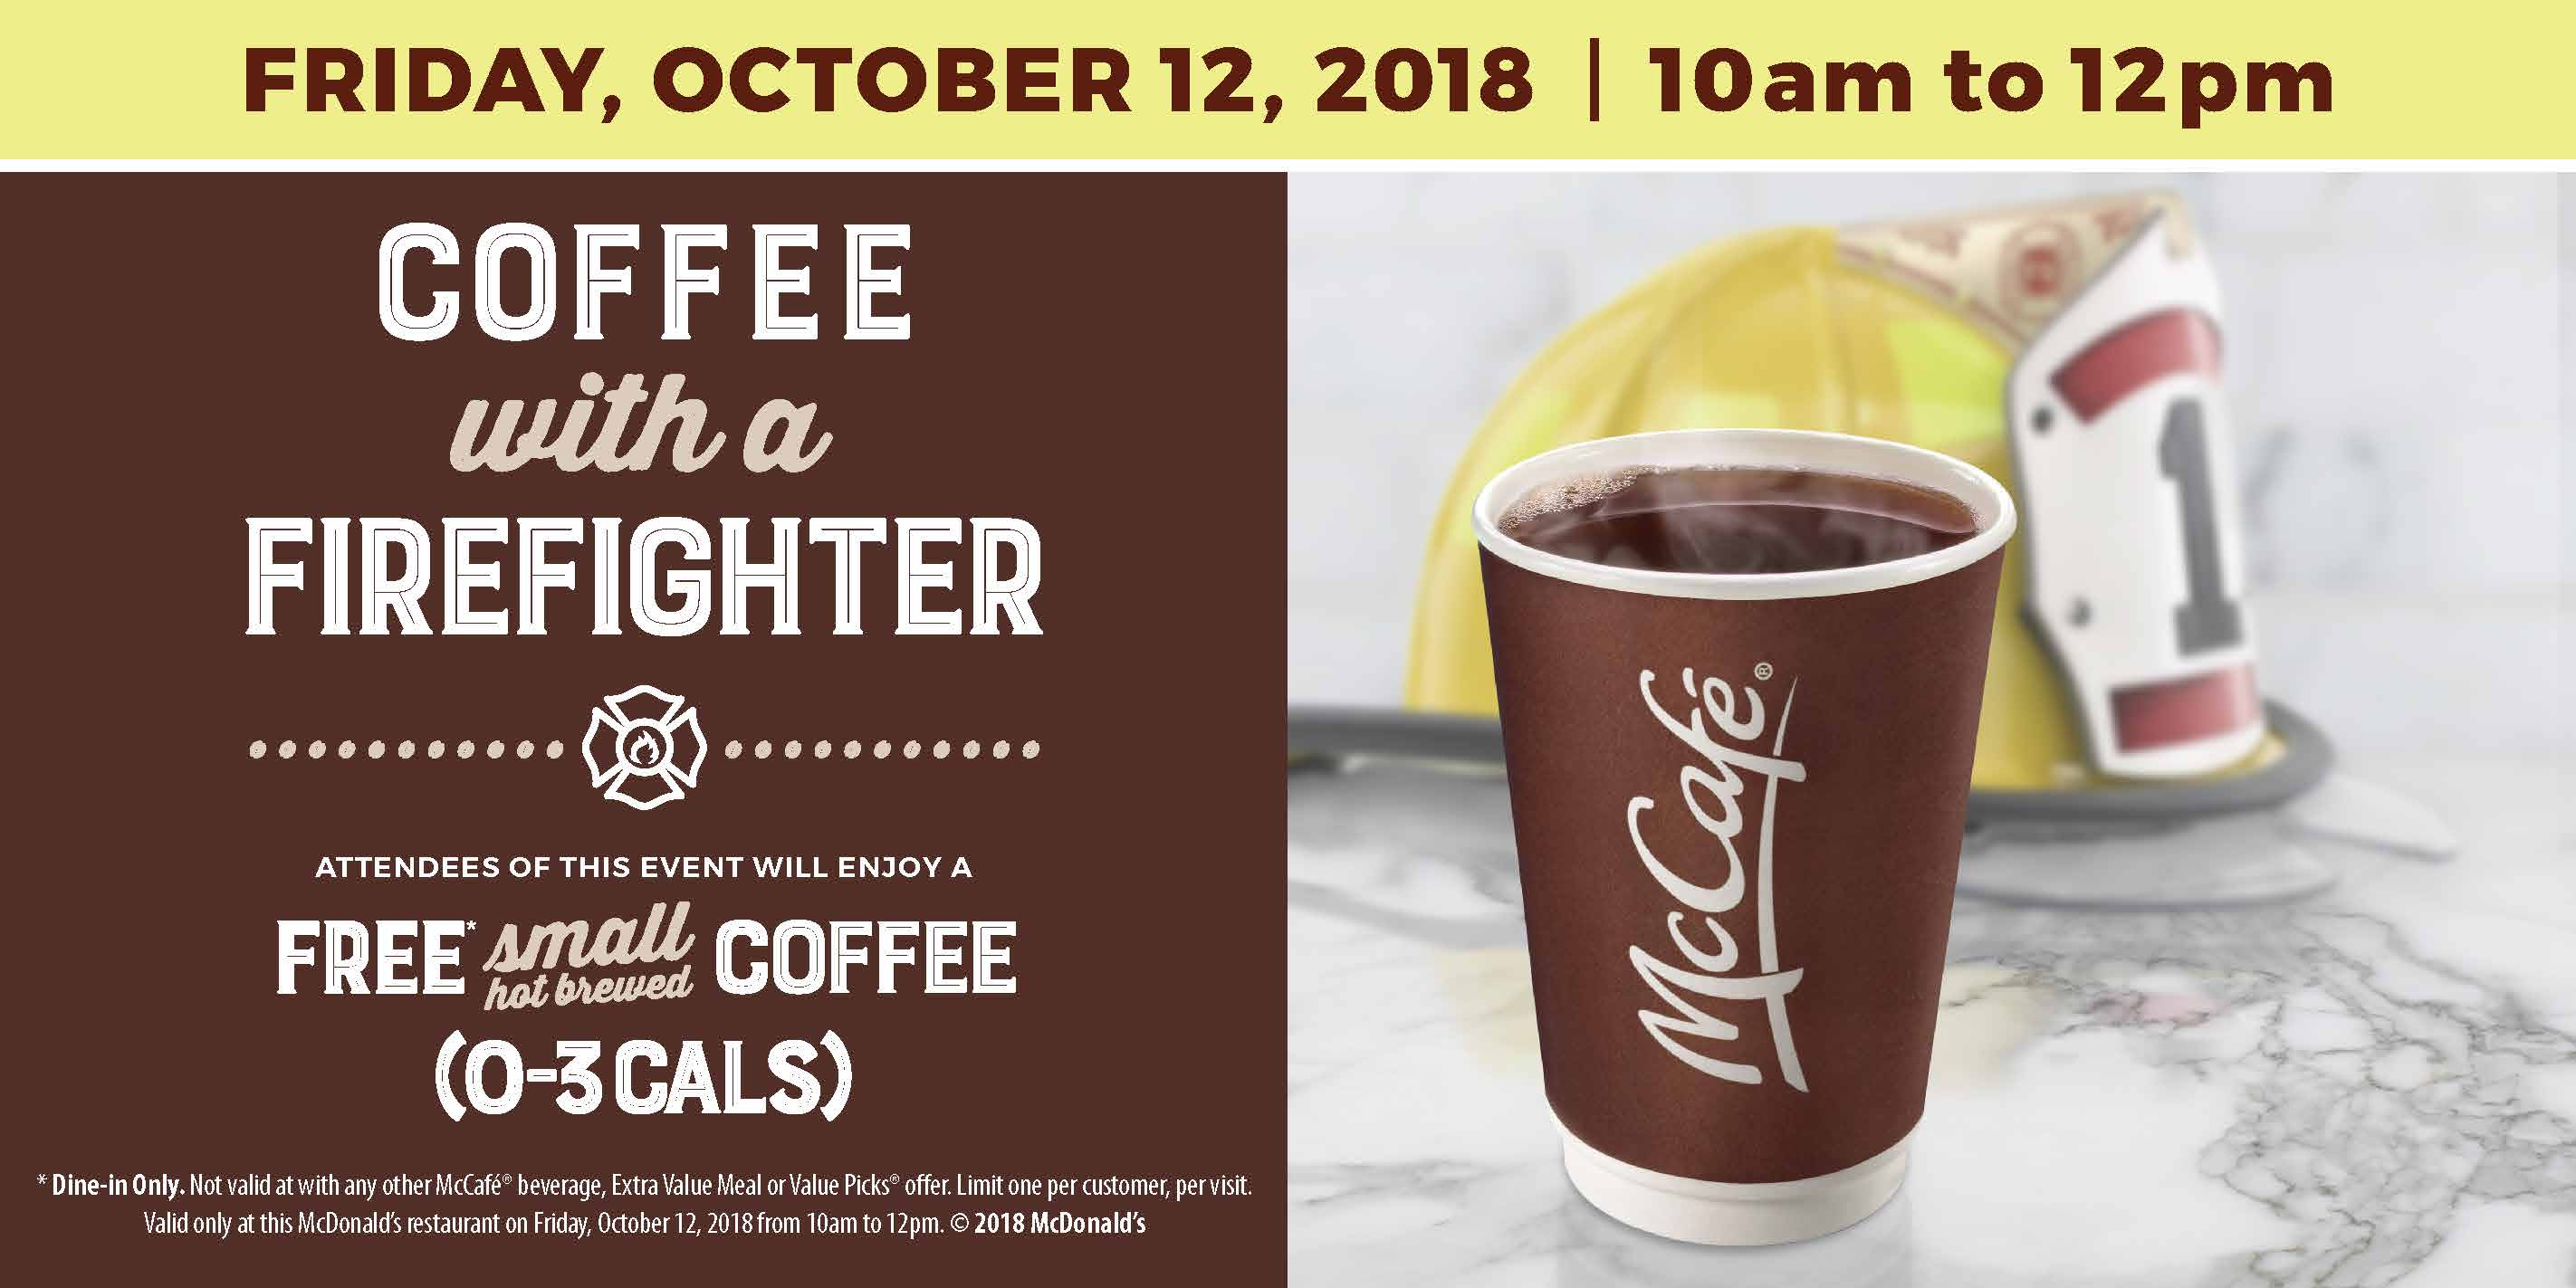 Coffee with a Firefighter:  October 12, 2018 from 10 am to 12 pm, McDonald's, 24018 Woodbine Ave, Keswick